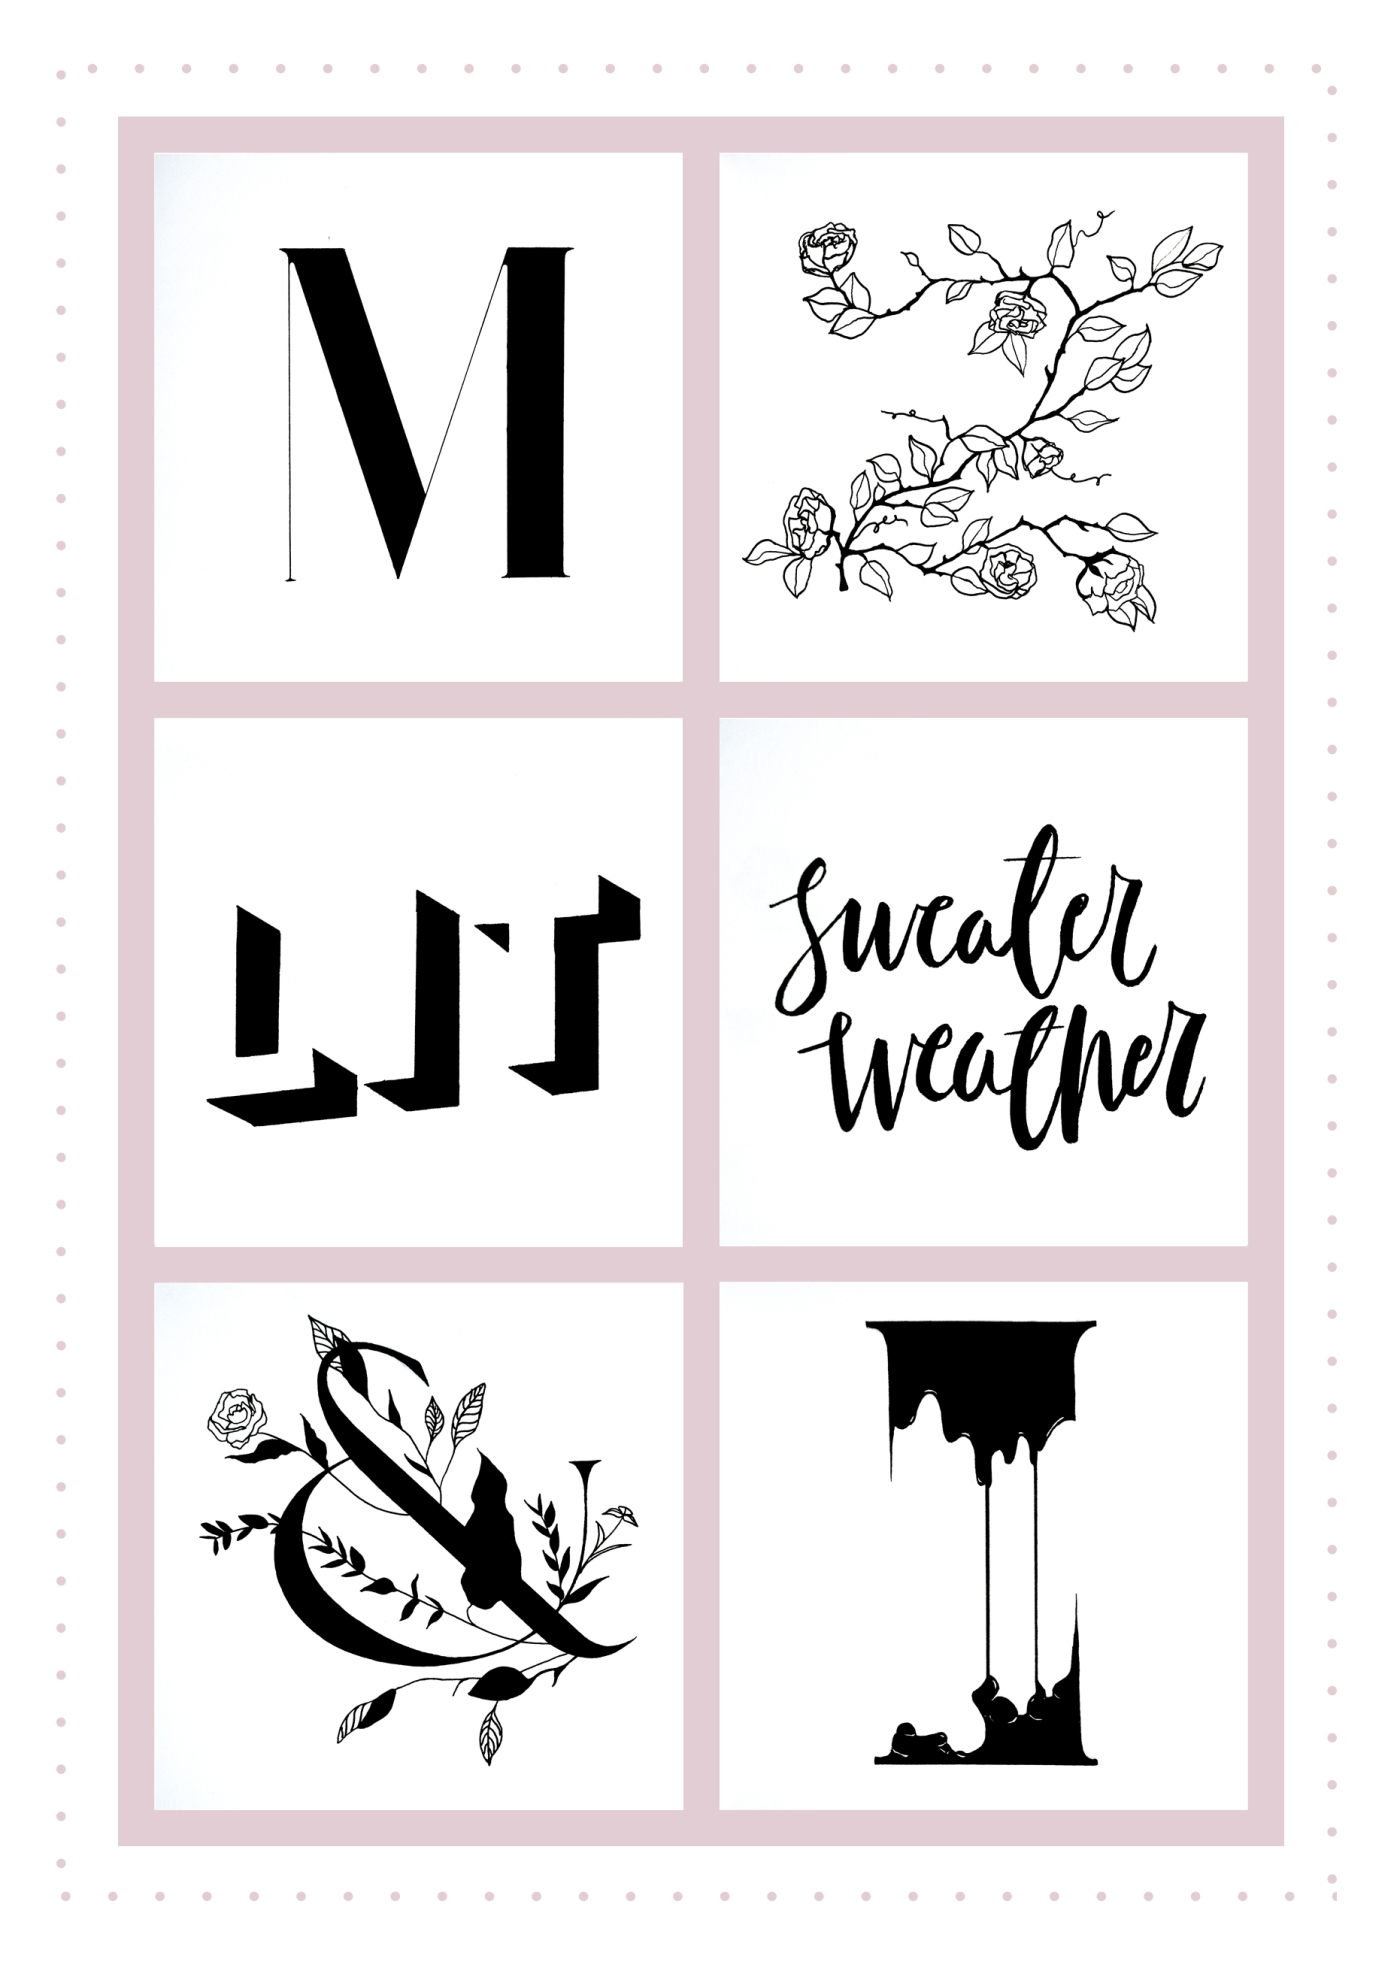 Creative typography and lettering designs